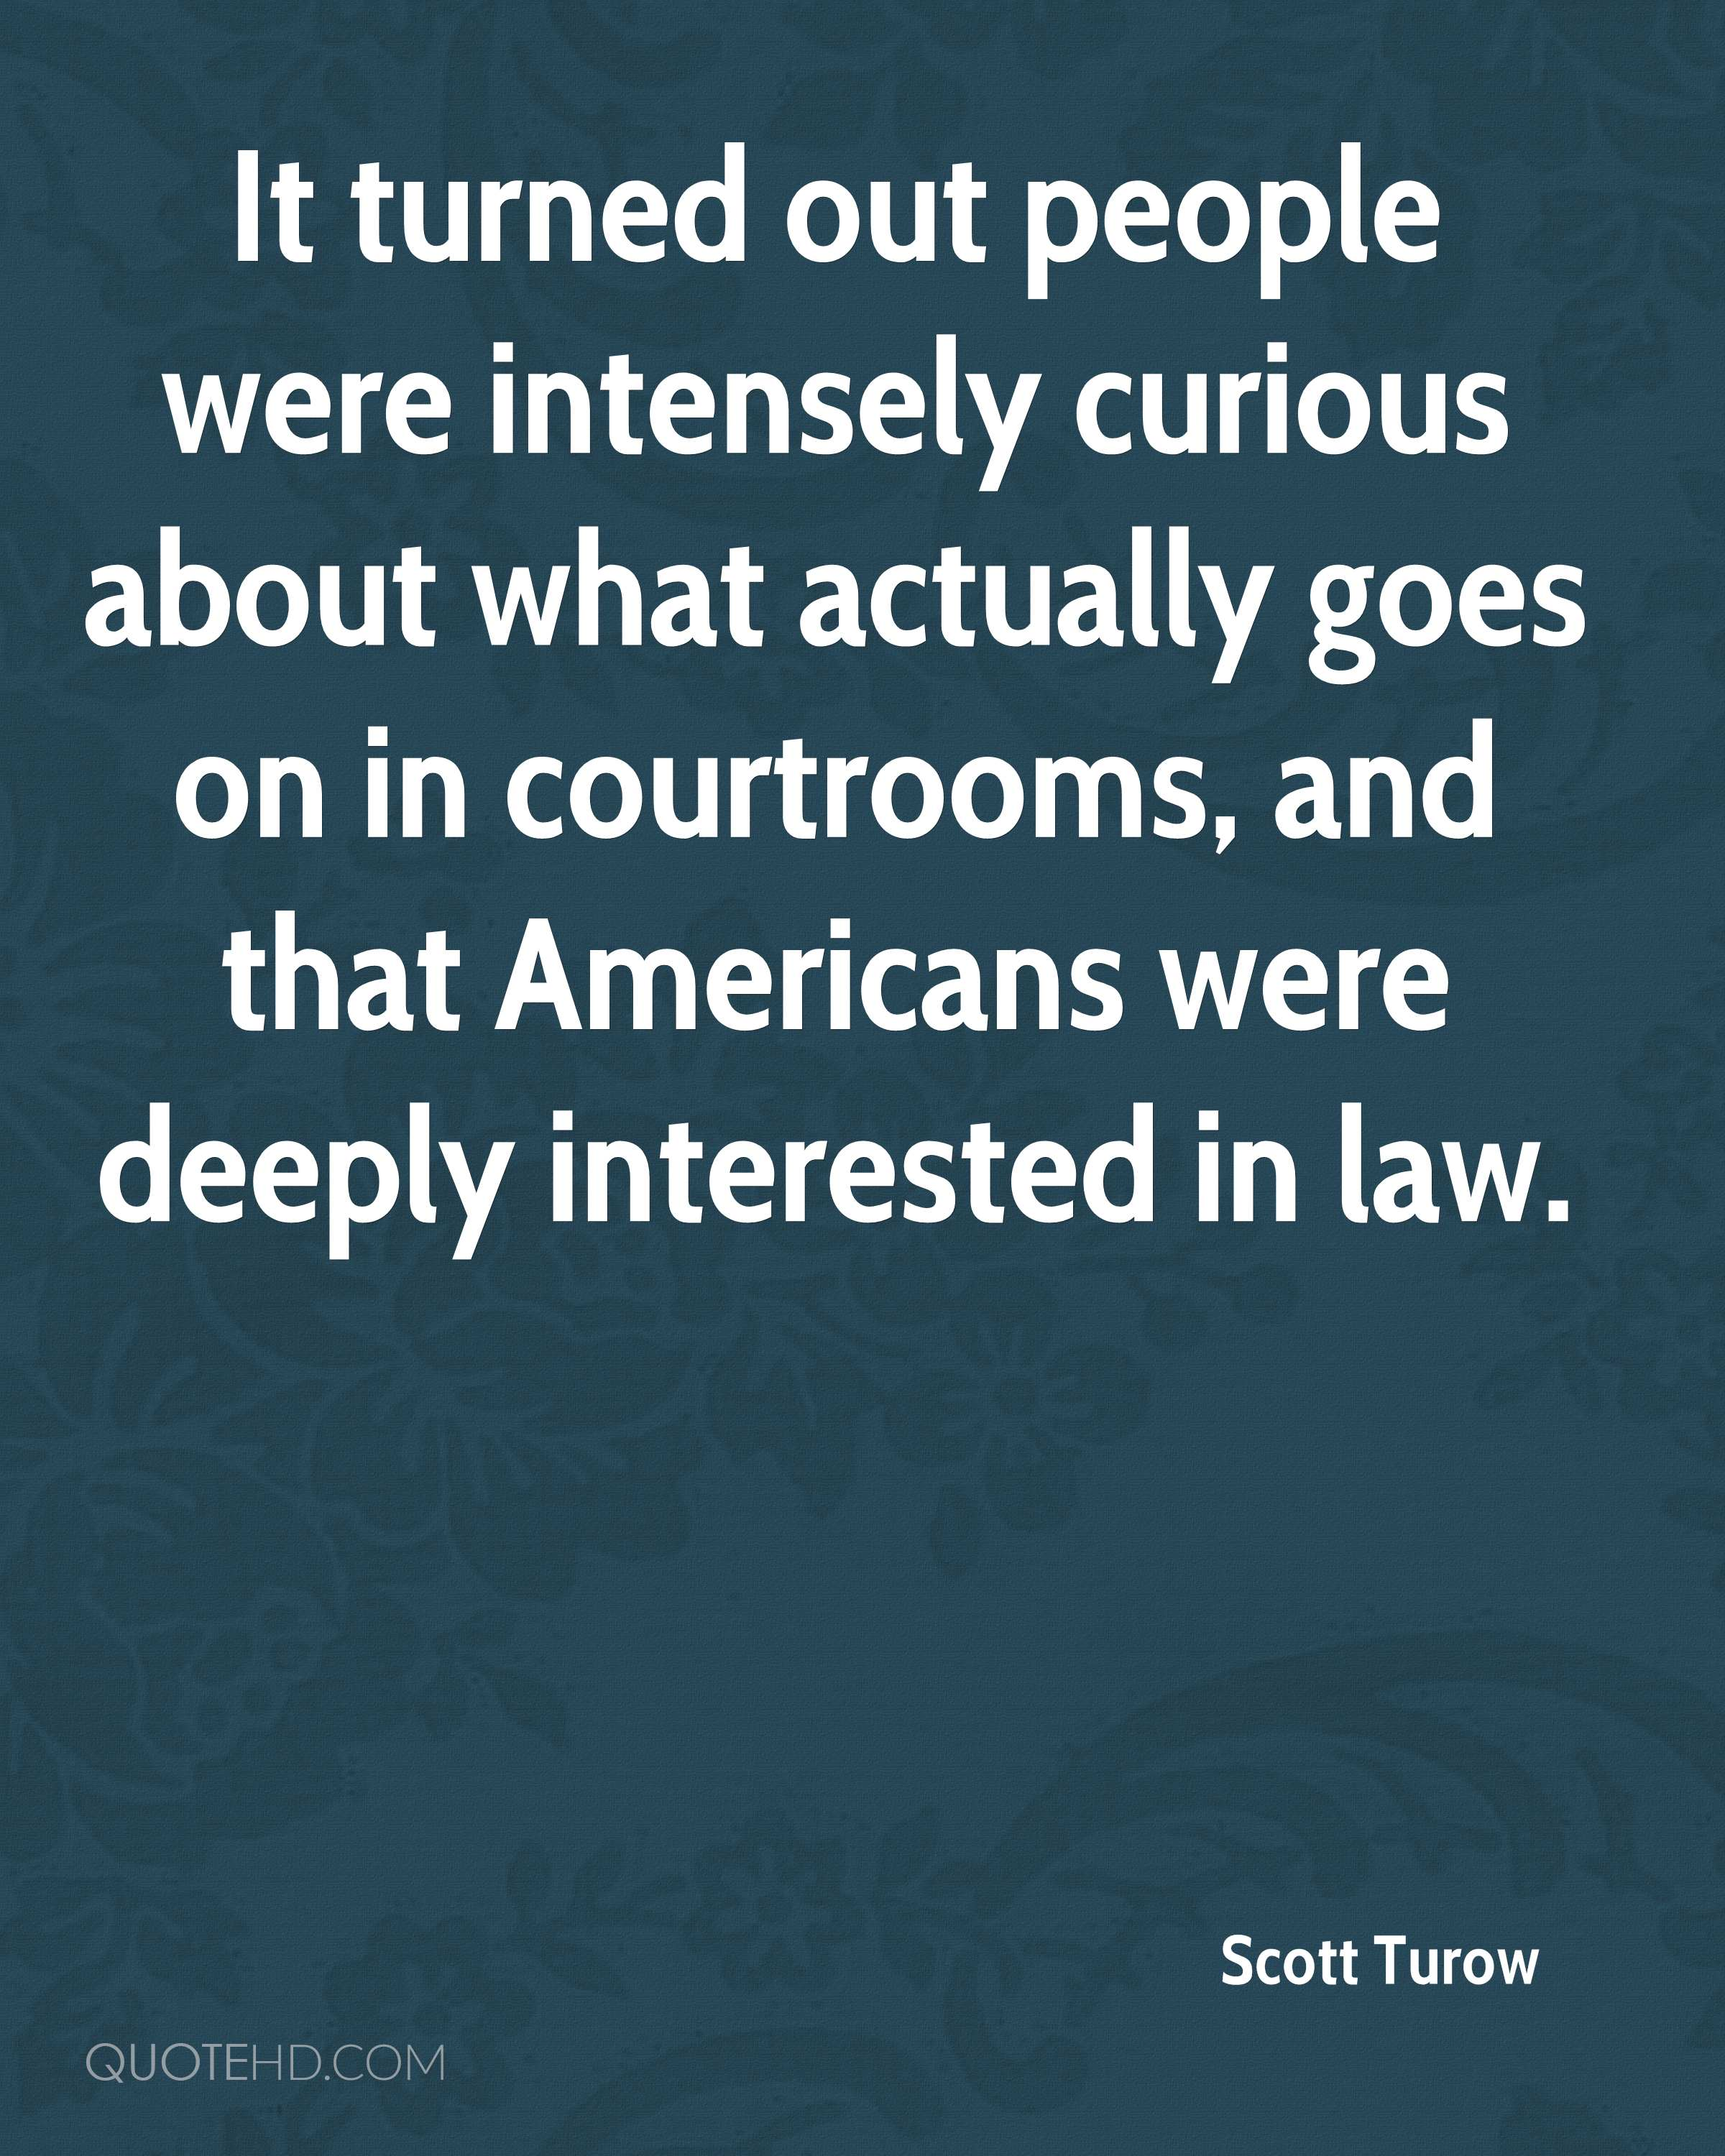 It turned out people were intensely curious about what actually goes on in courtrooms, and that Americans were deeply interested in law.